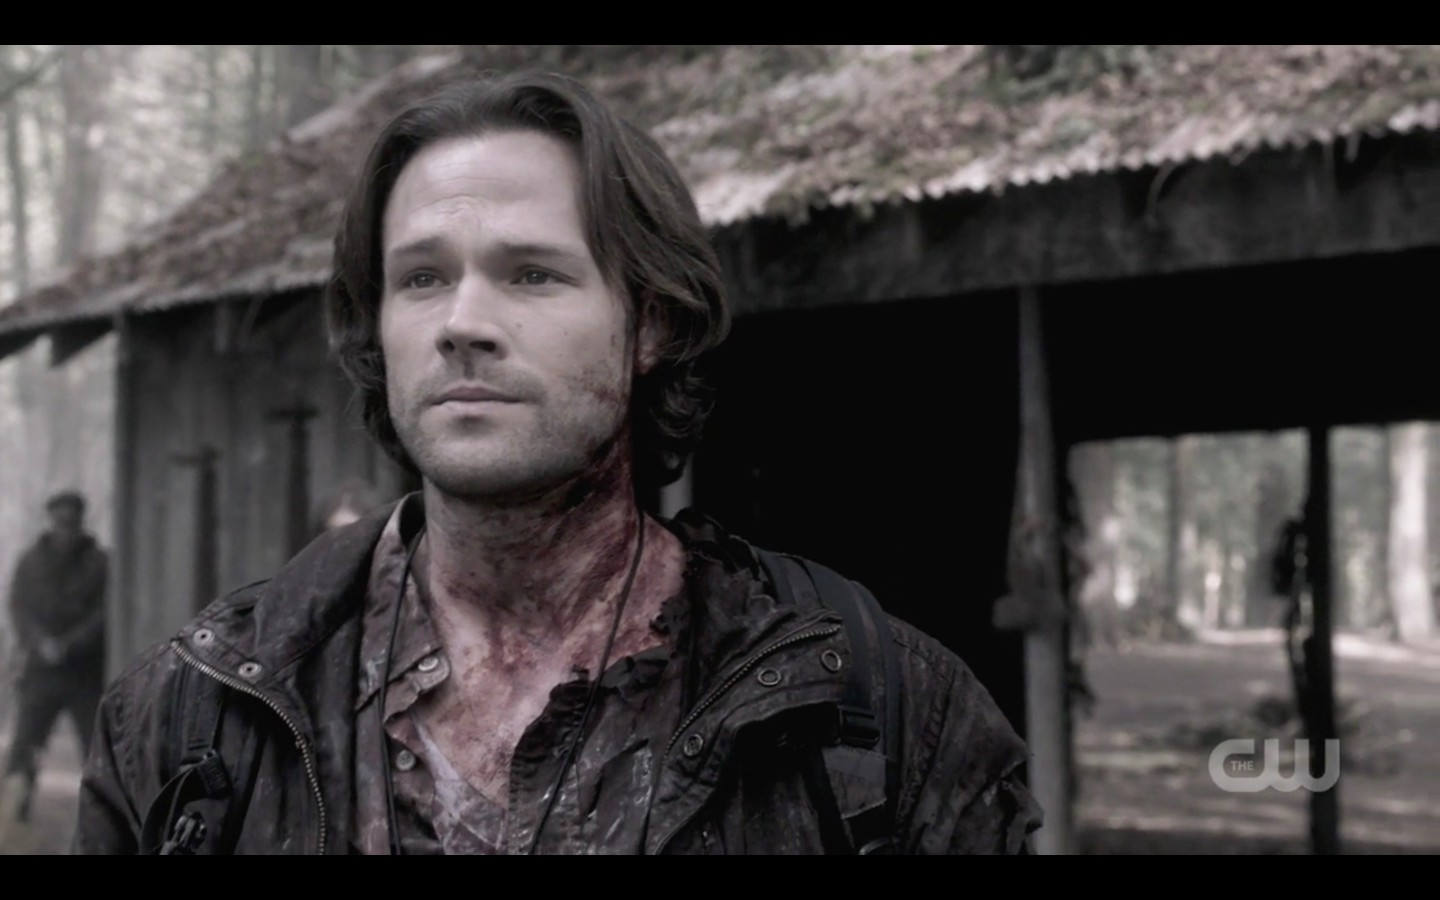 sam winchester almost smile with jack lucifer